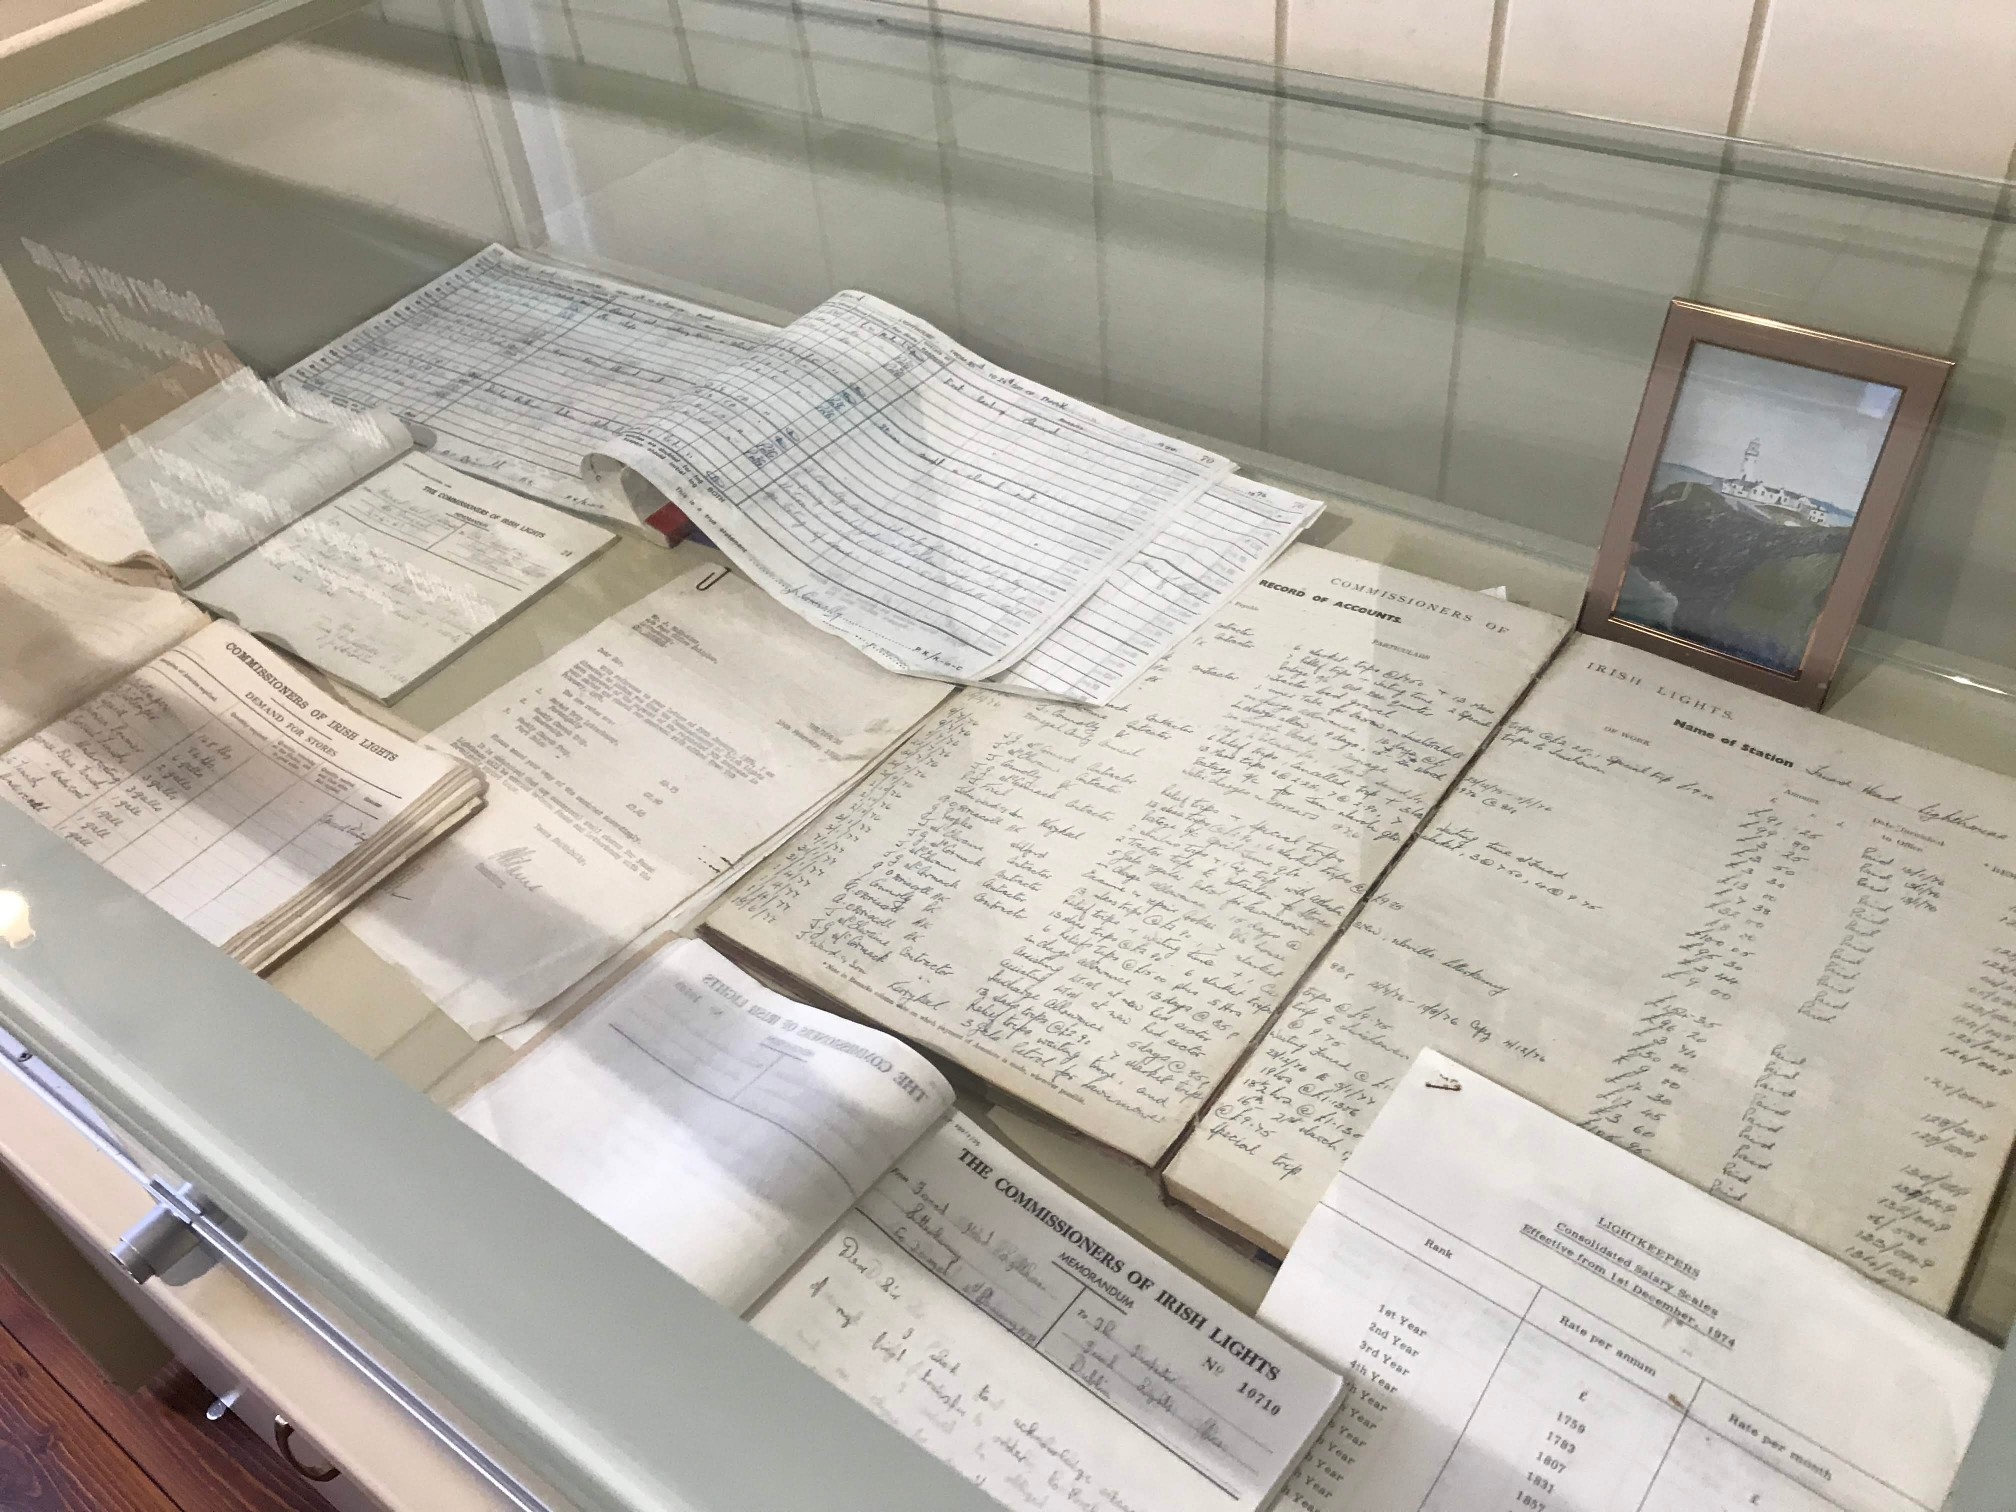 Some of the paperwork kept at the lighthouse